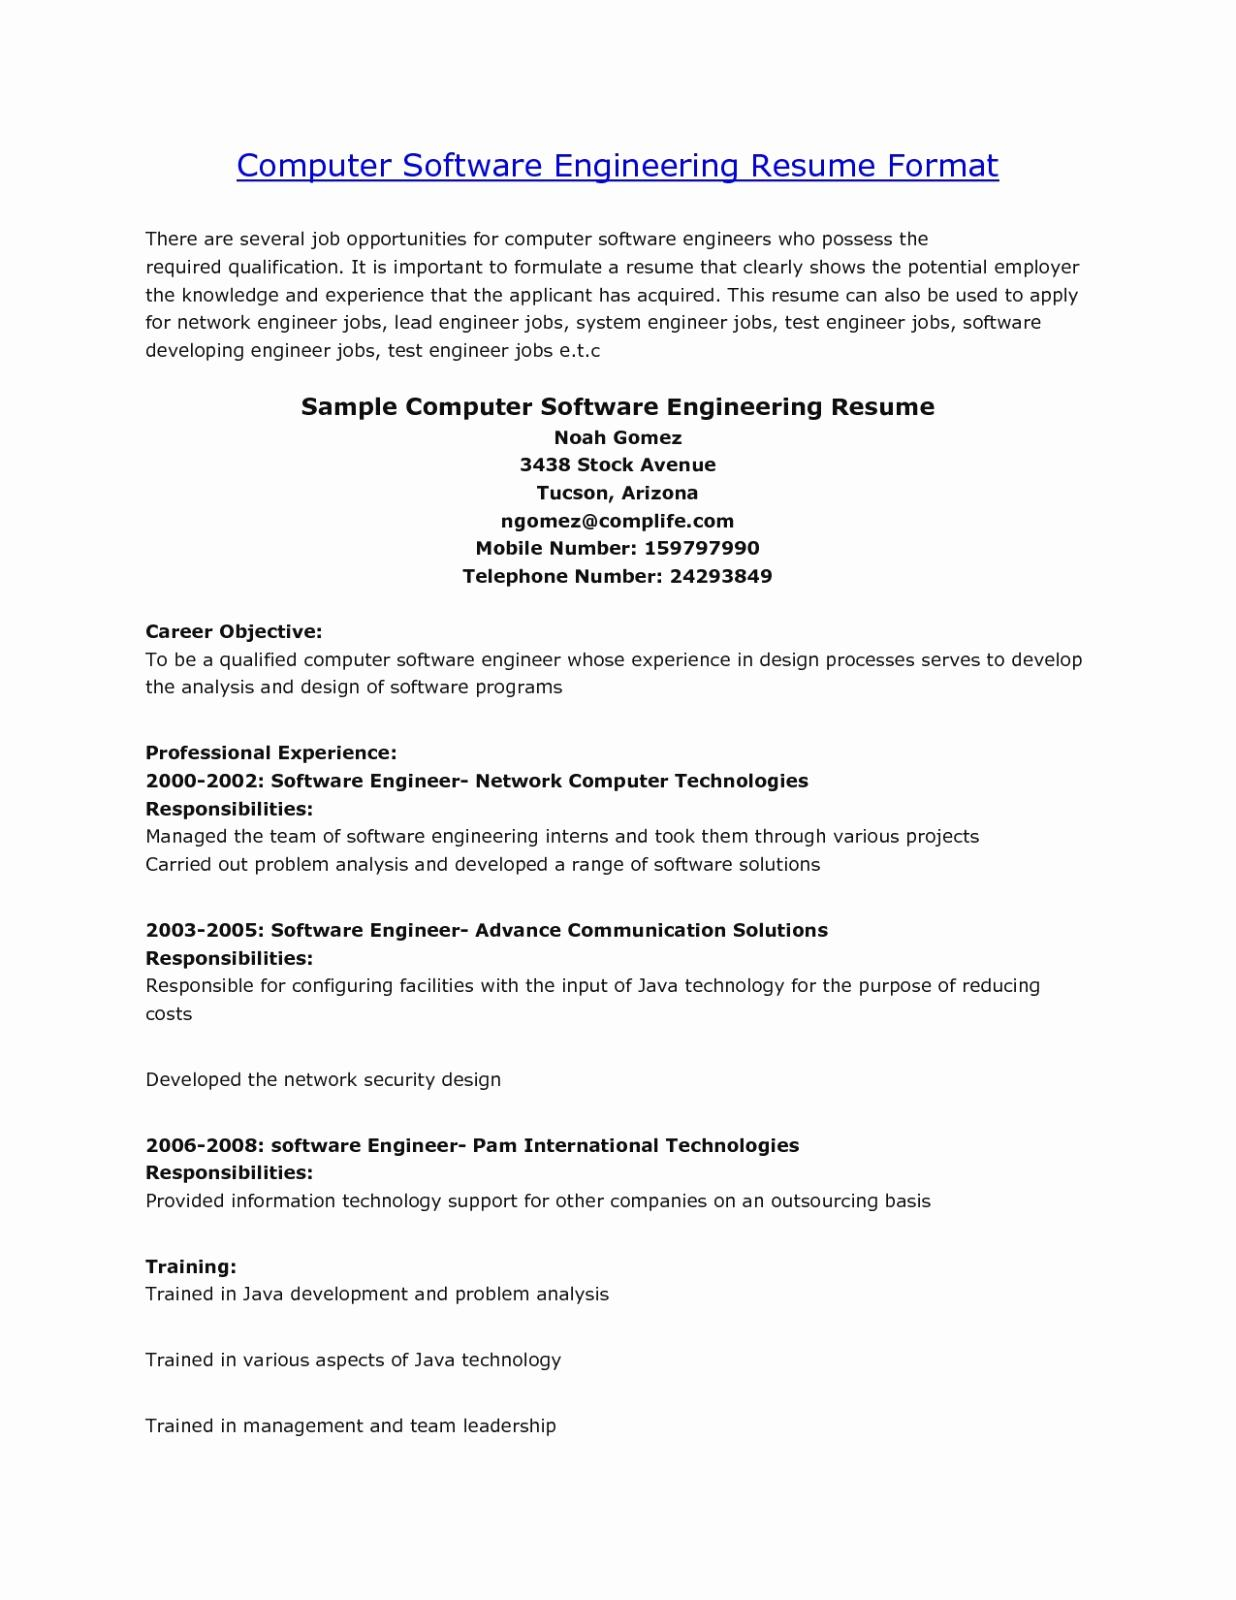 Technical Support Resume Template - Technical Support Engineer Resume format Fresh Production assistant